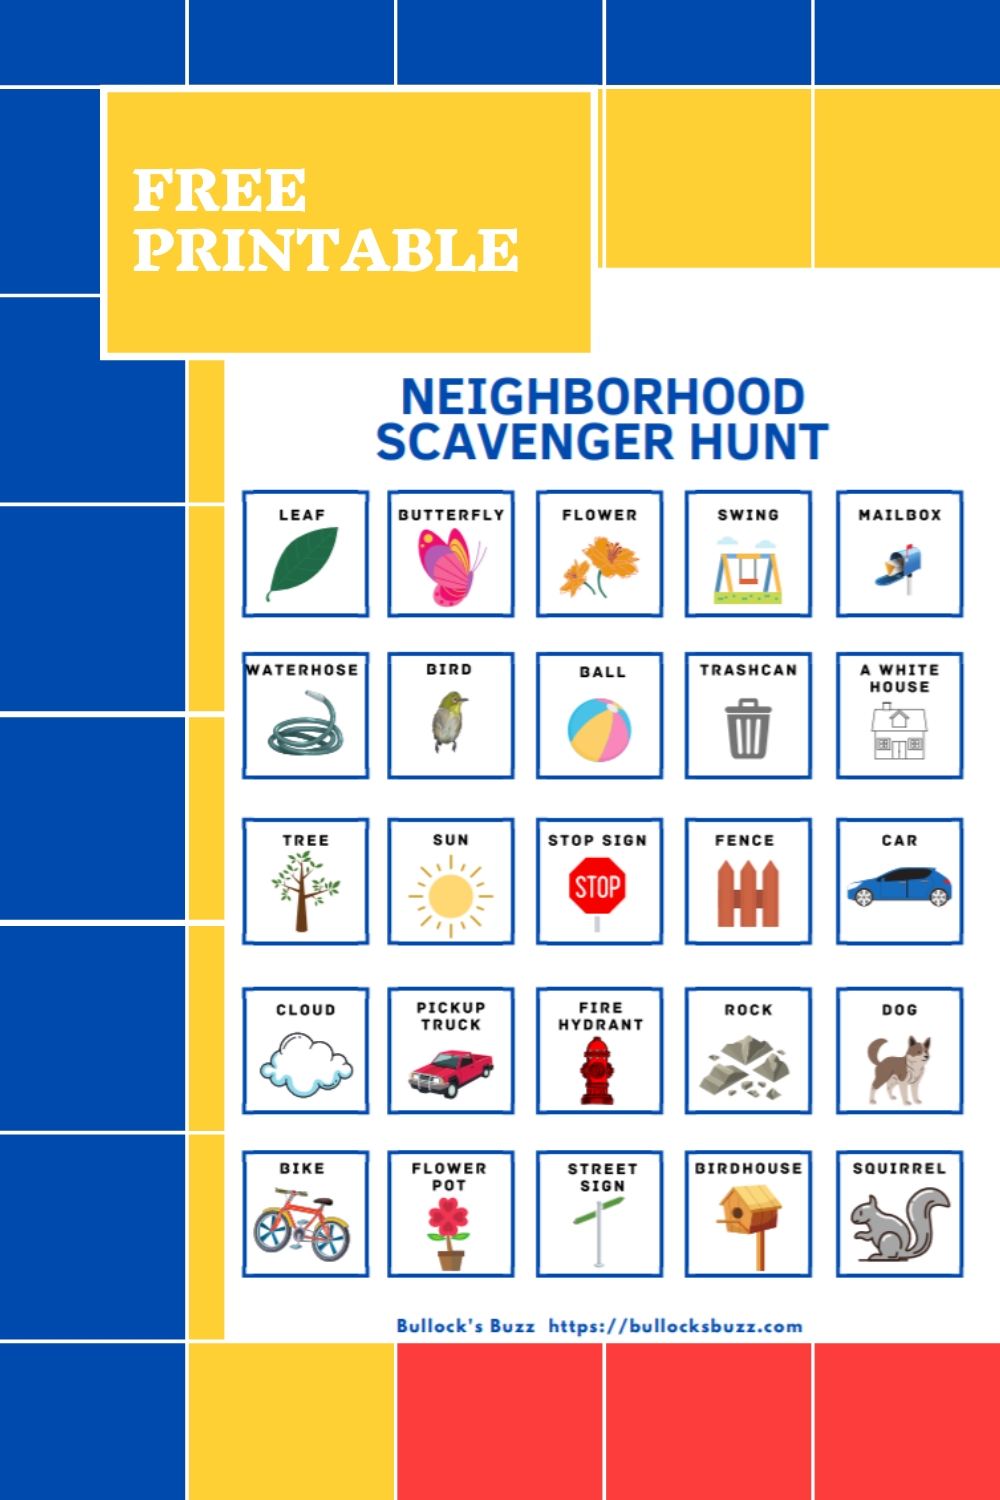 If you're looking for ways to keep the kids entertained, send them on a fun-filled neighborhood scavenger hunt with this free printable! #printable #kids #scavengerhunt